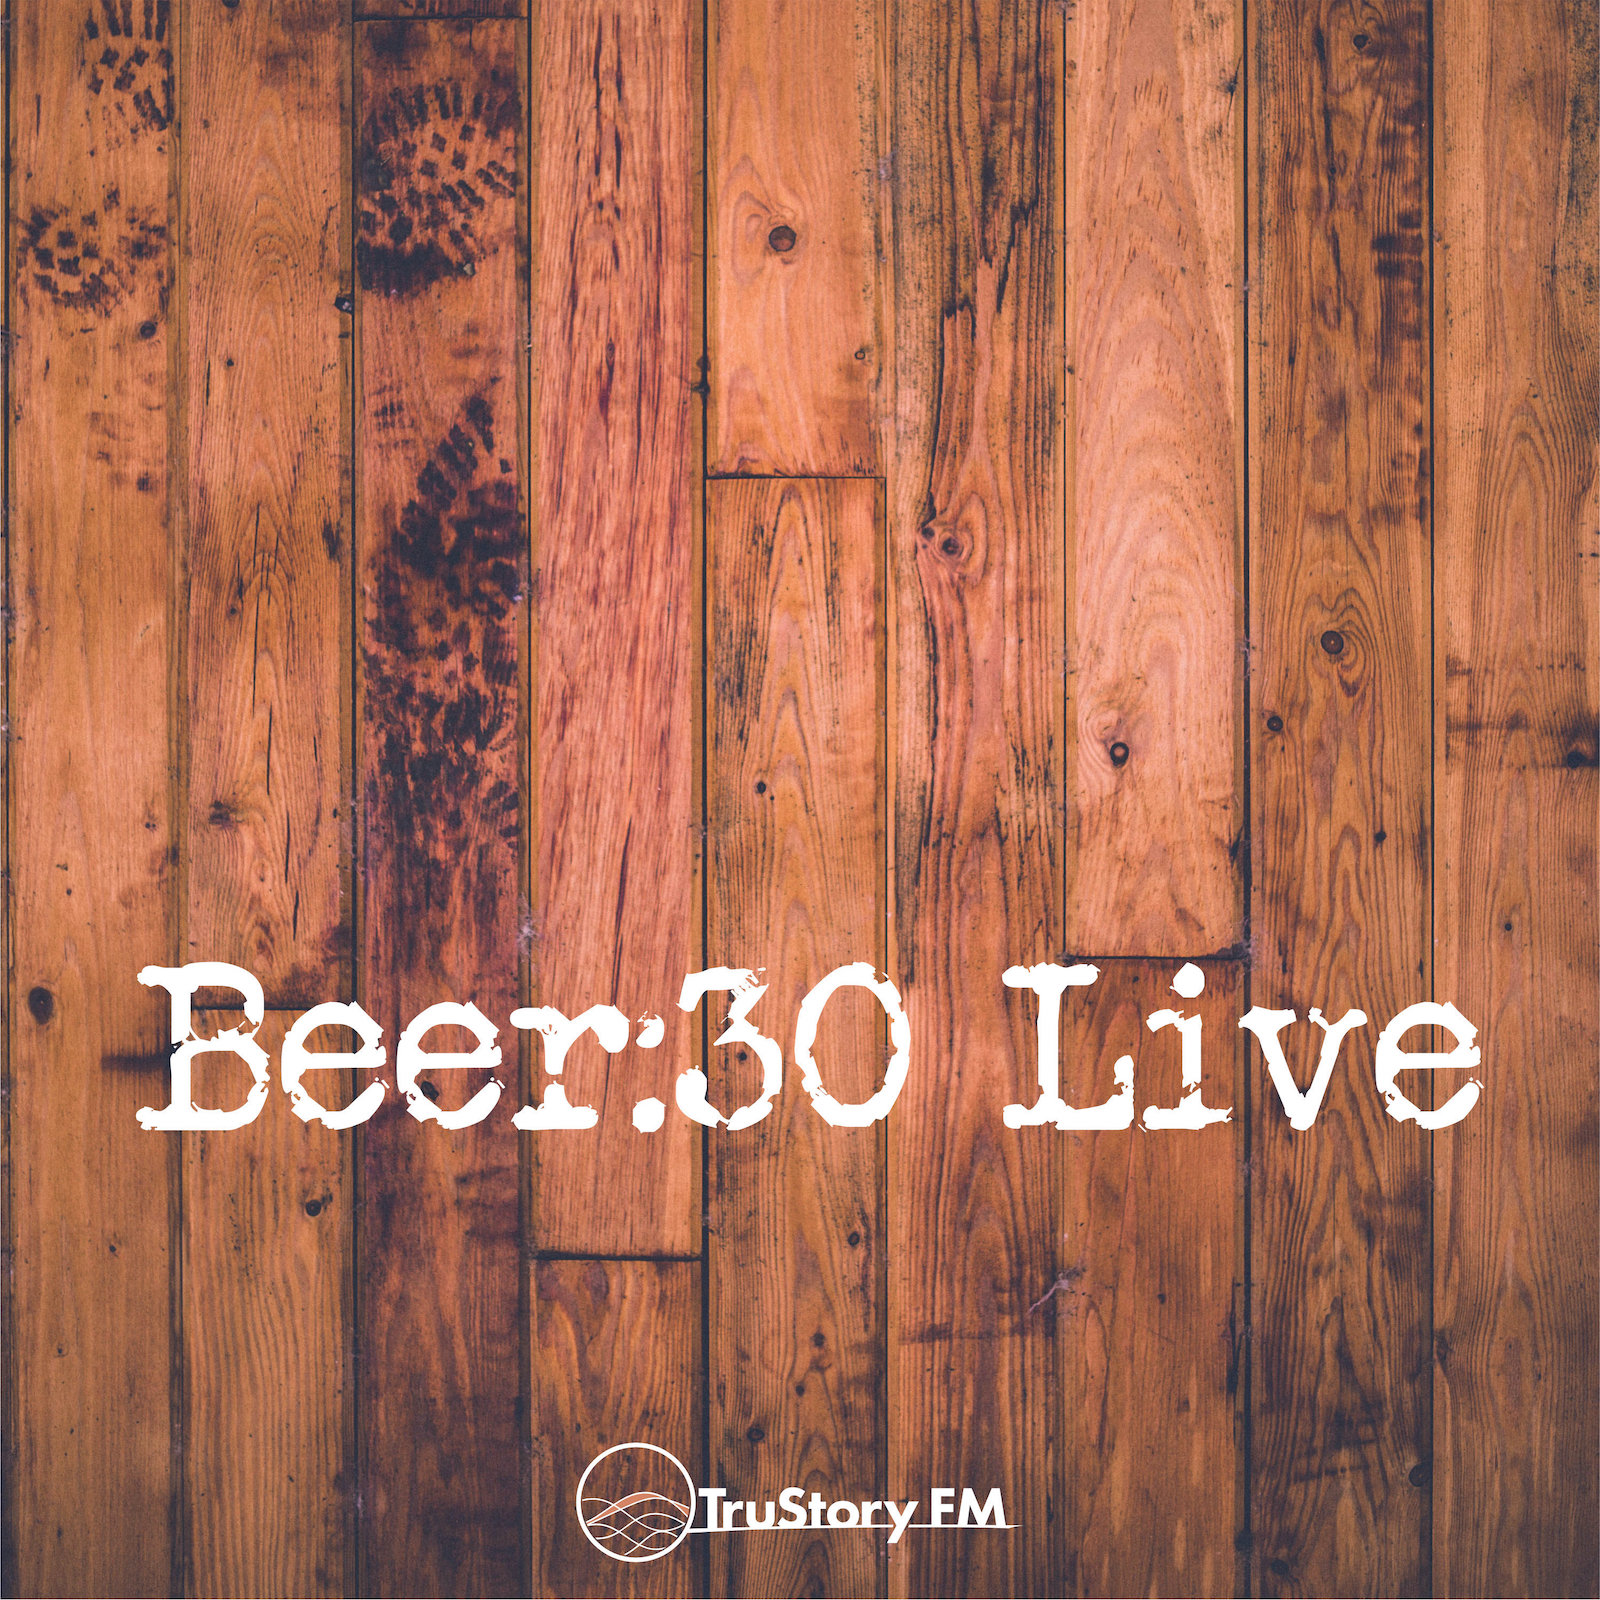 The Beer:30 Live Show!